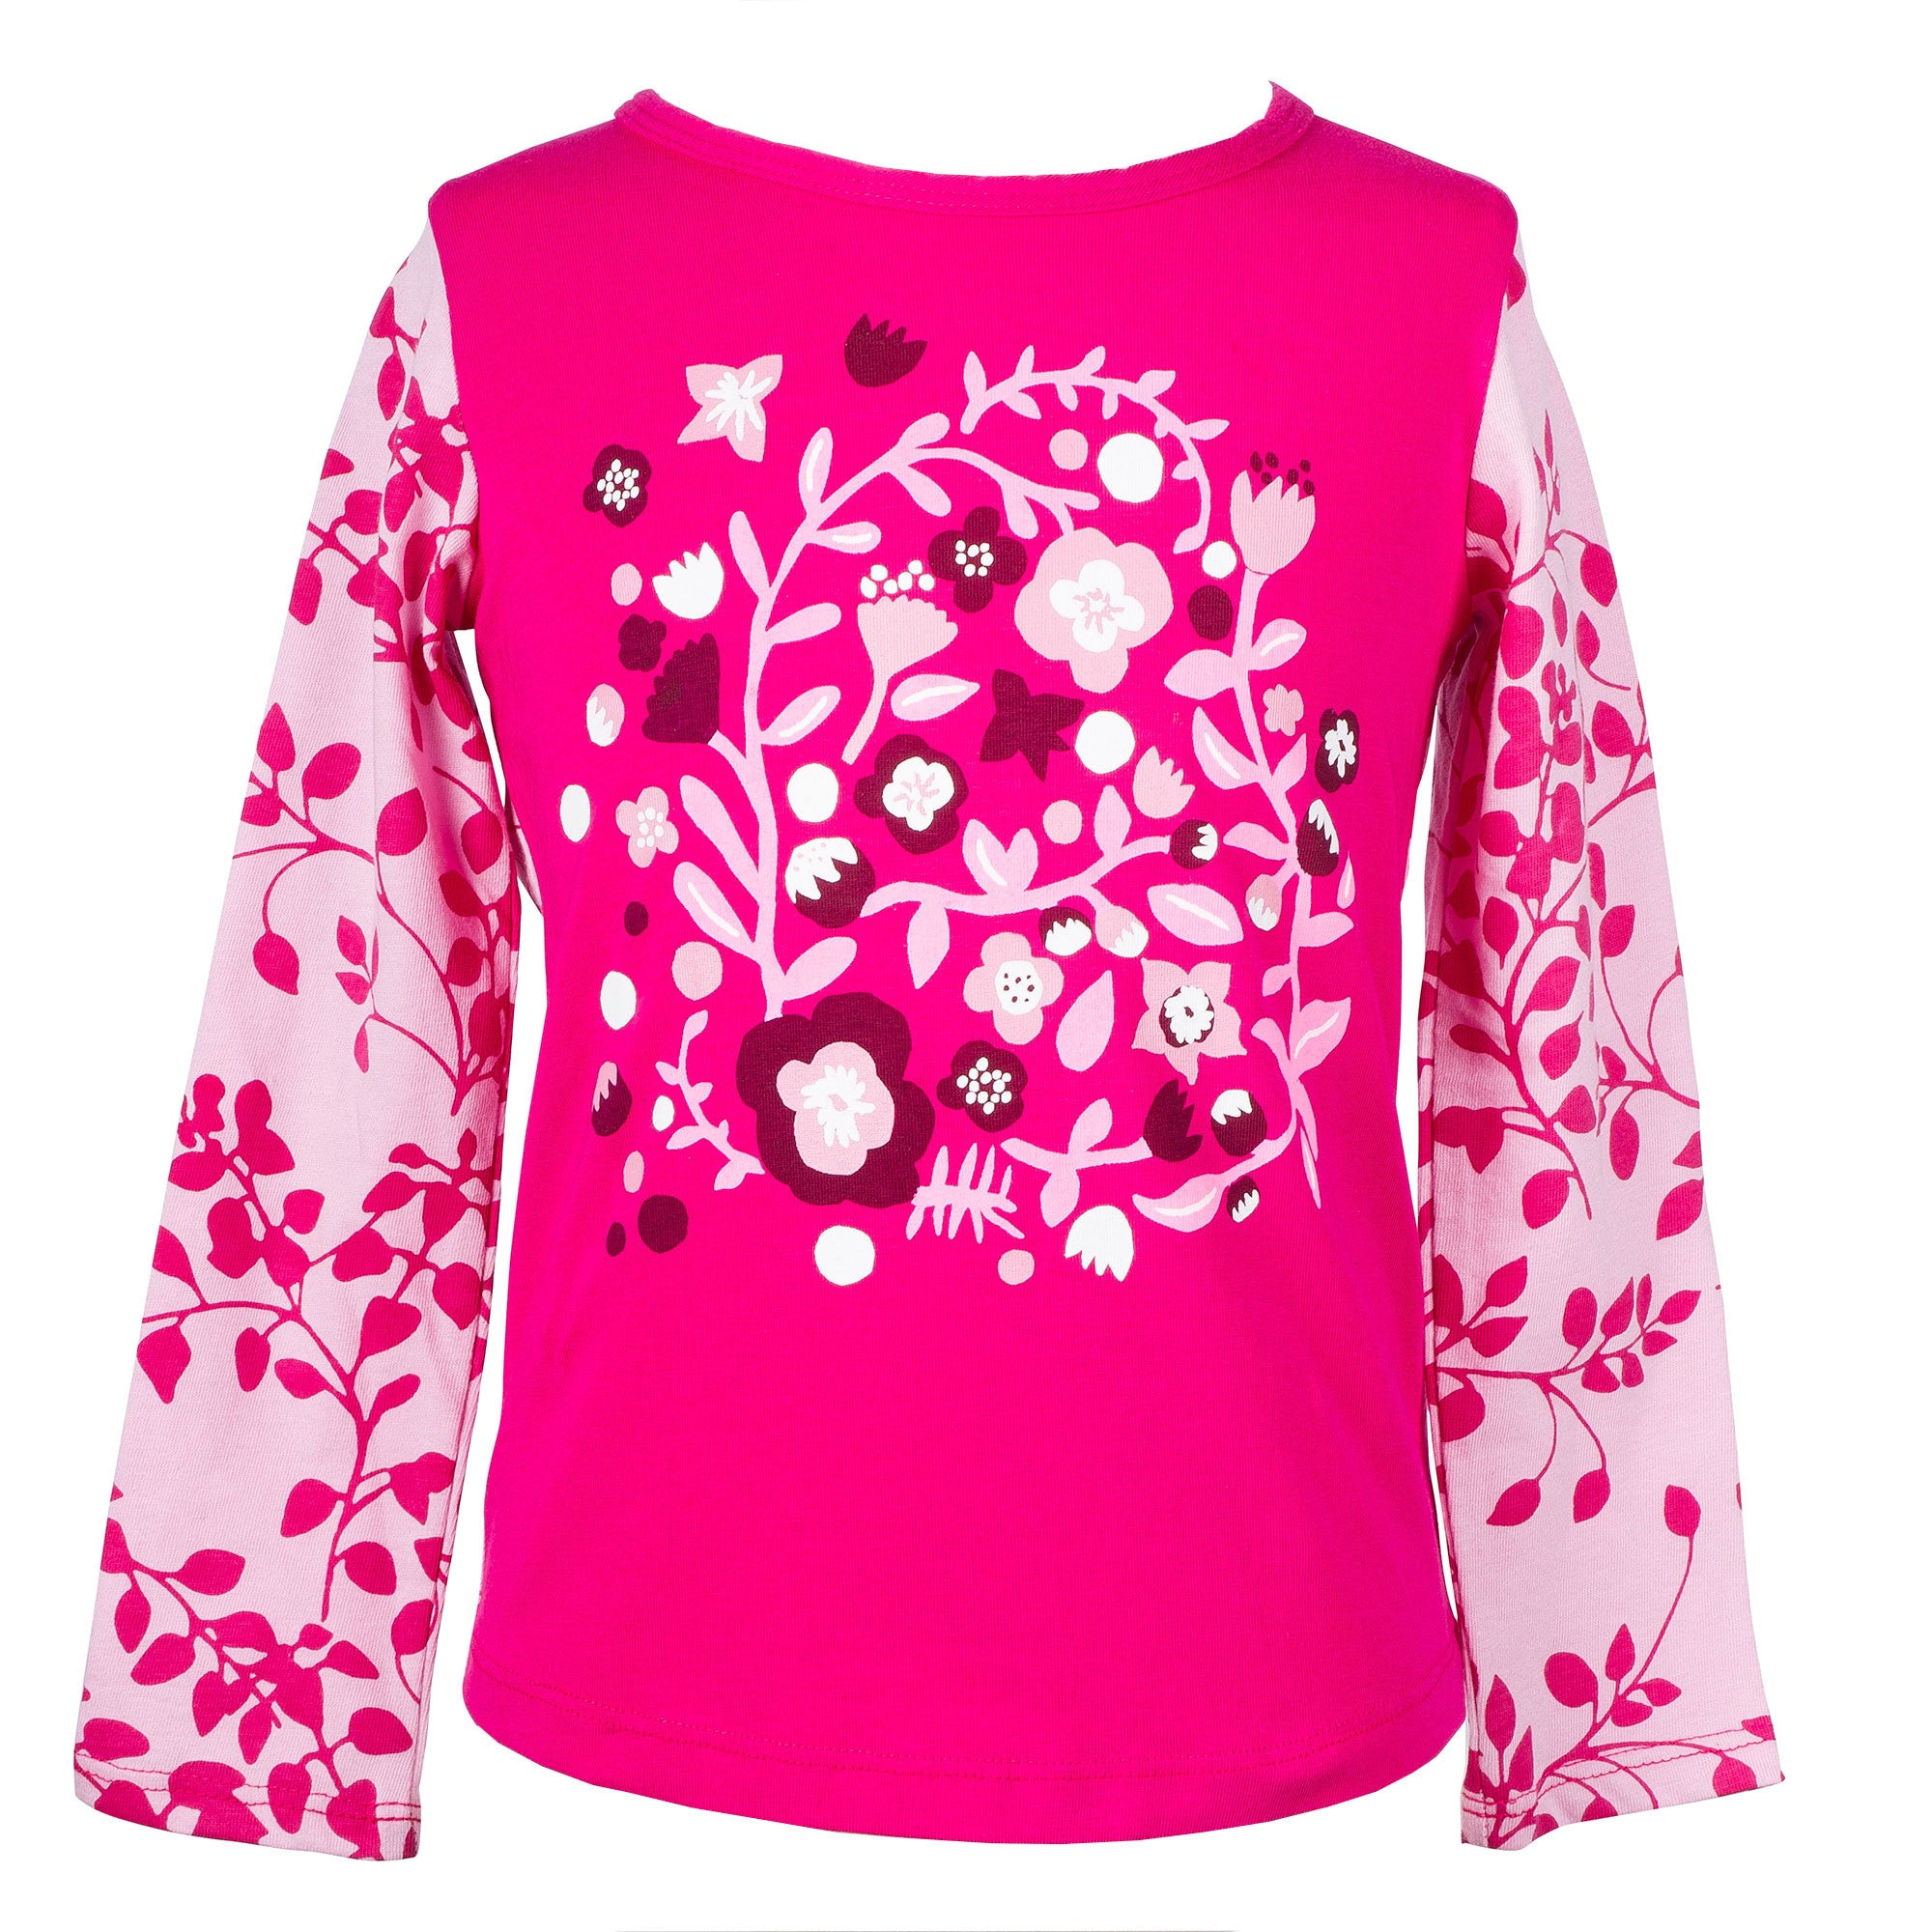 Pink wallflowers long-sleeved top